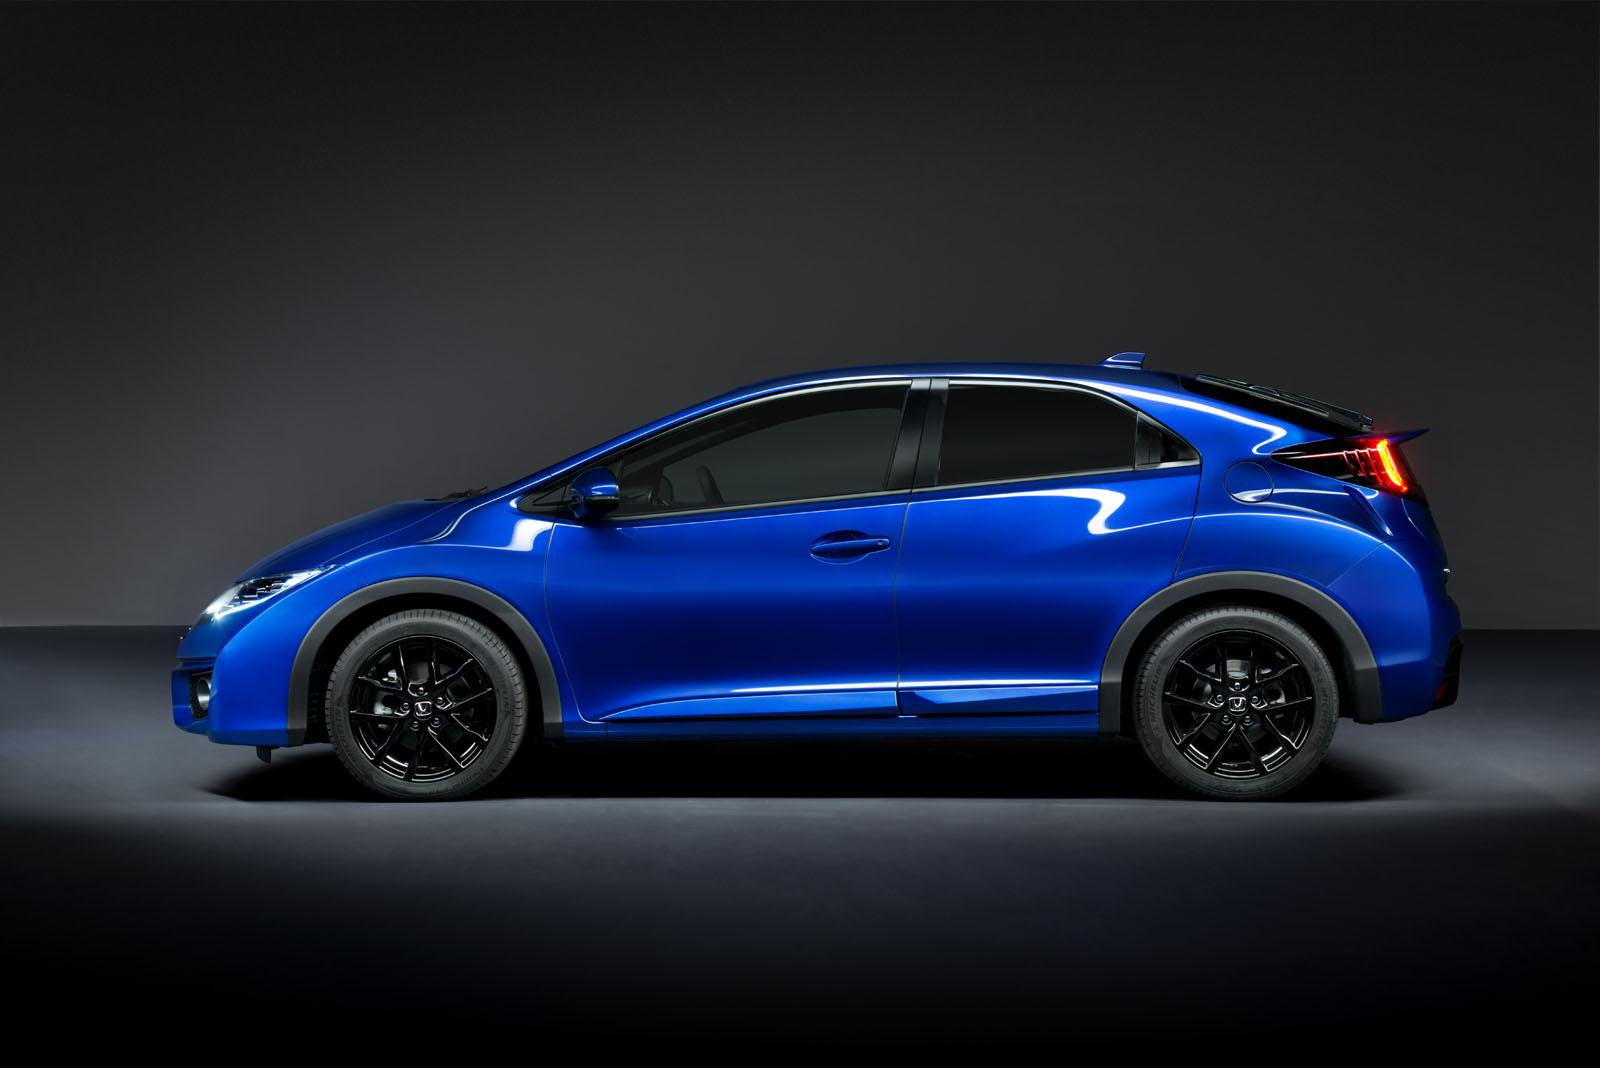 Subaru Premium 2014 >> Updated 2015 Honda Civic Hatchback unveiled - ForceGT.com